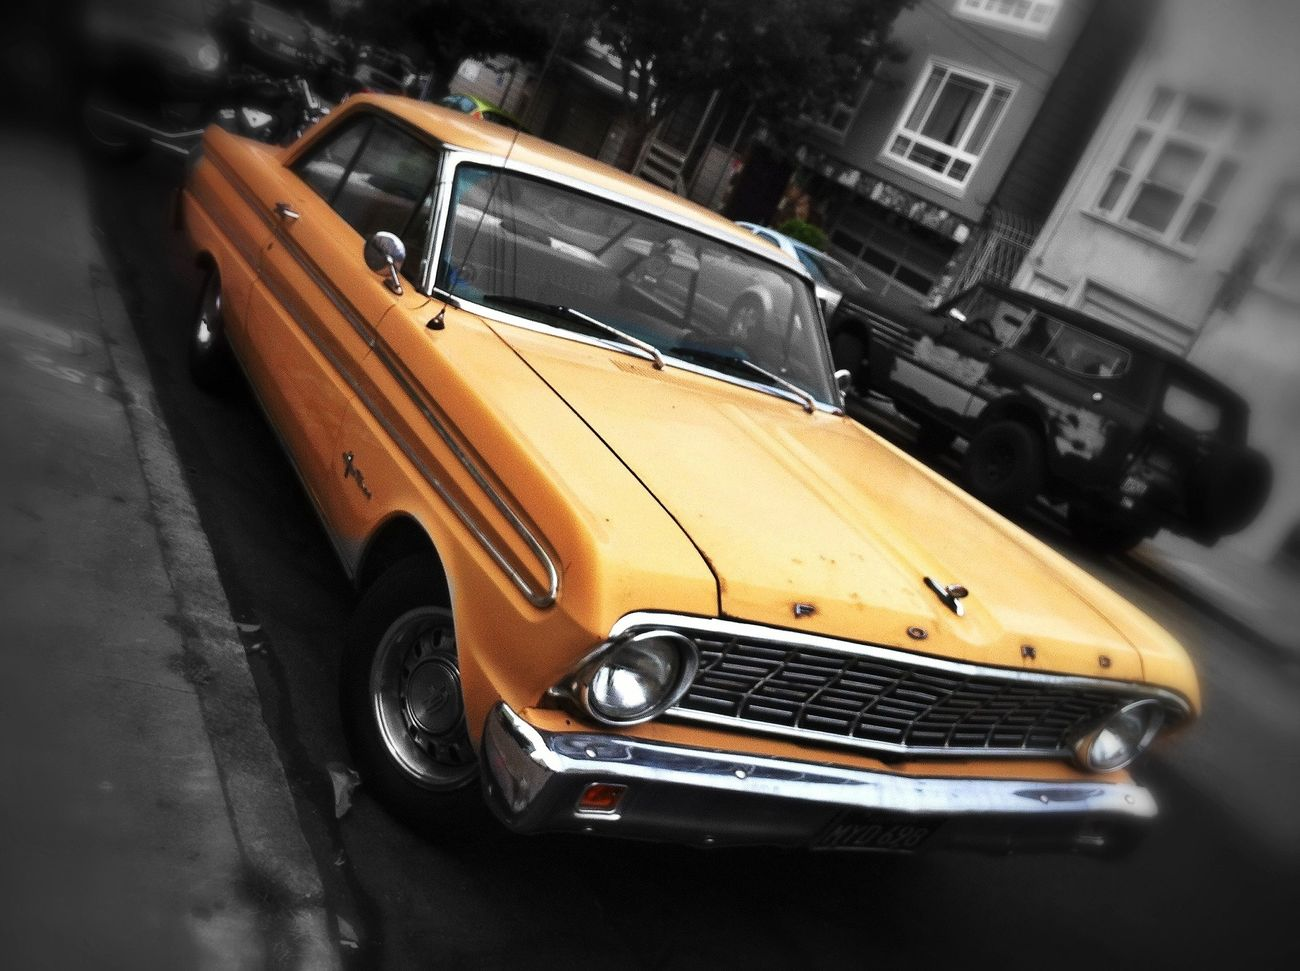 EyeEm San Francisco Meetup July 2013 Vintage Cars Colorsplash Wheels